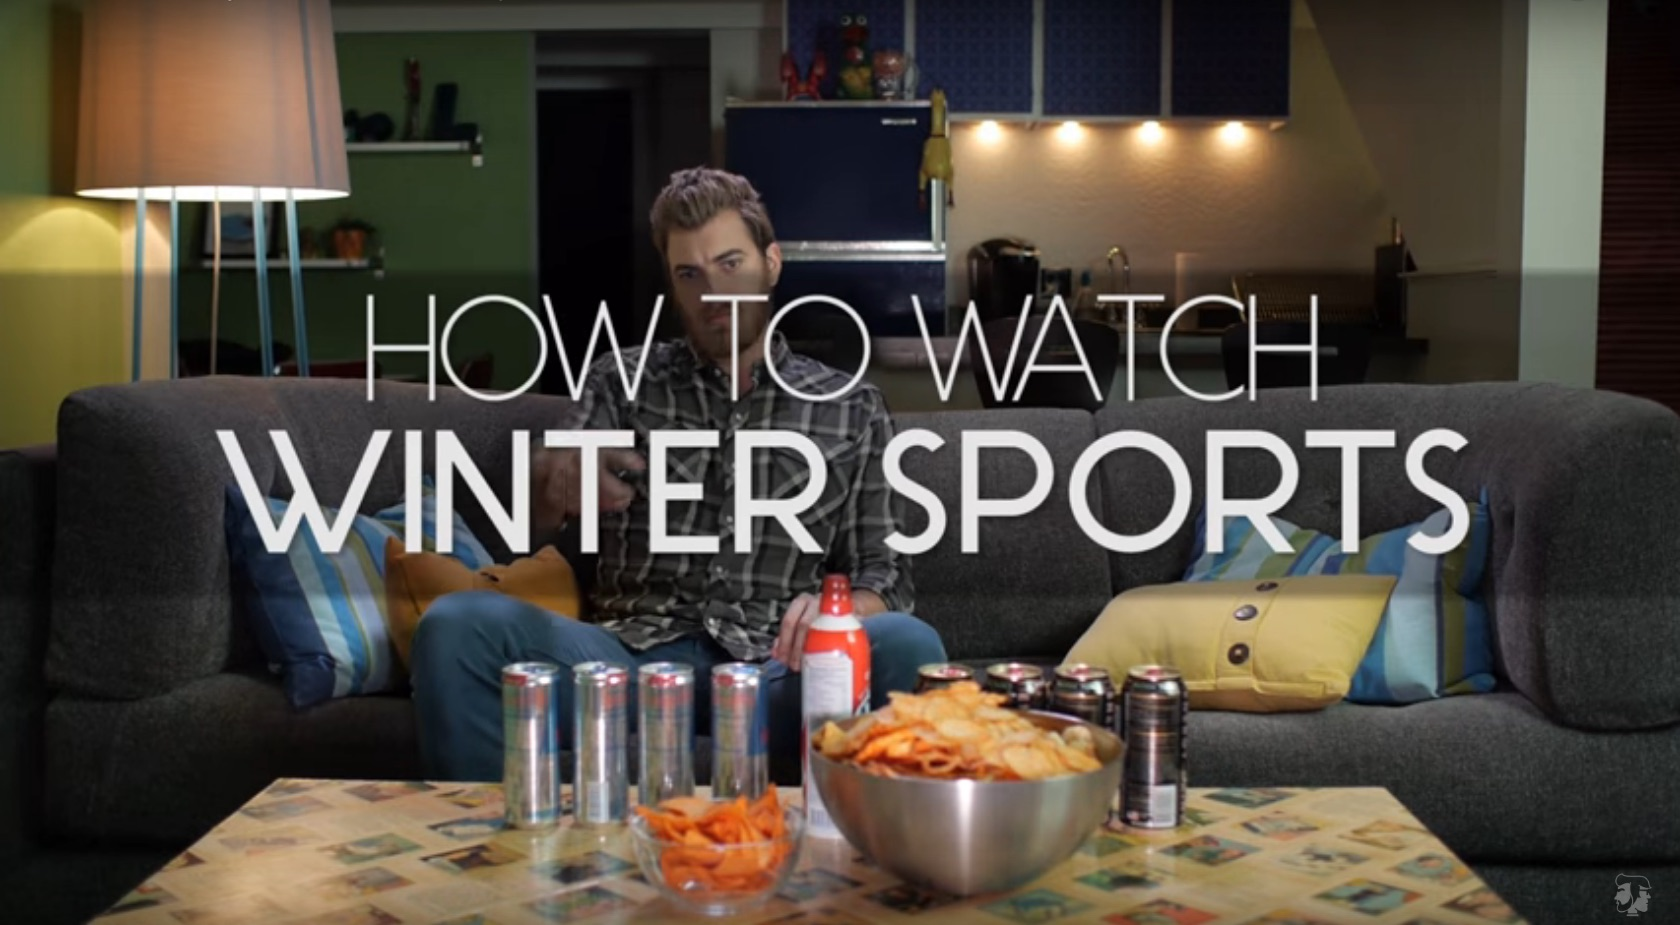 How to watch winter sports